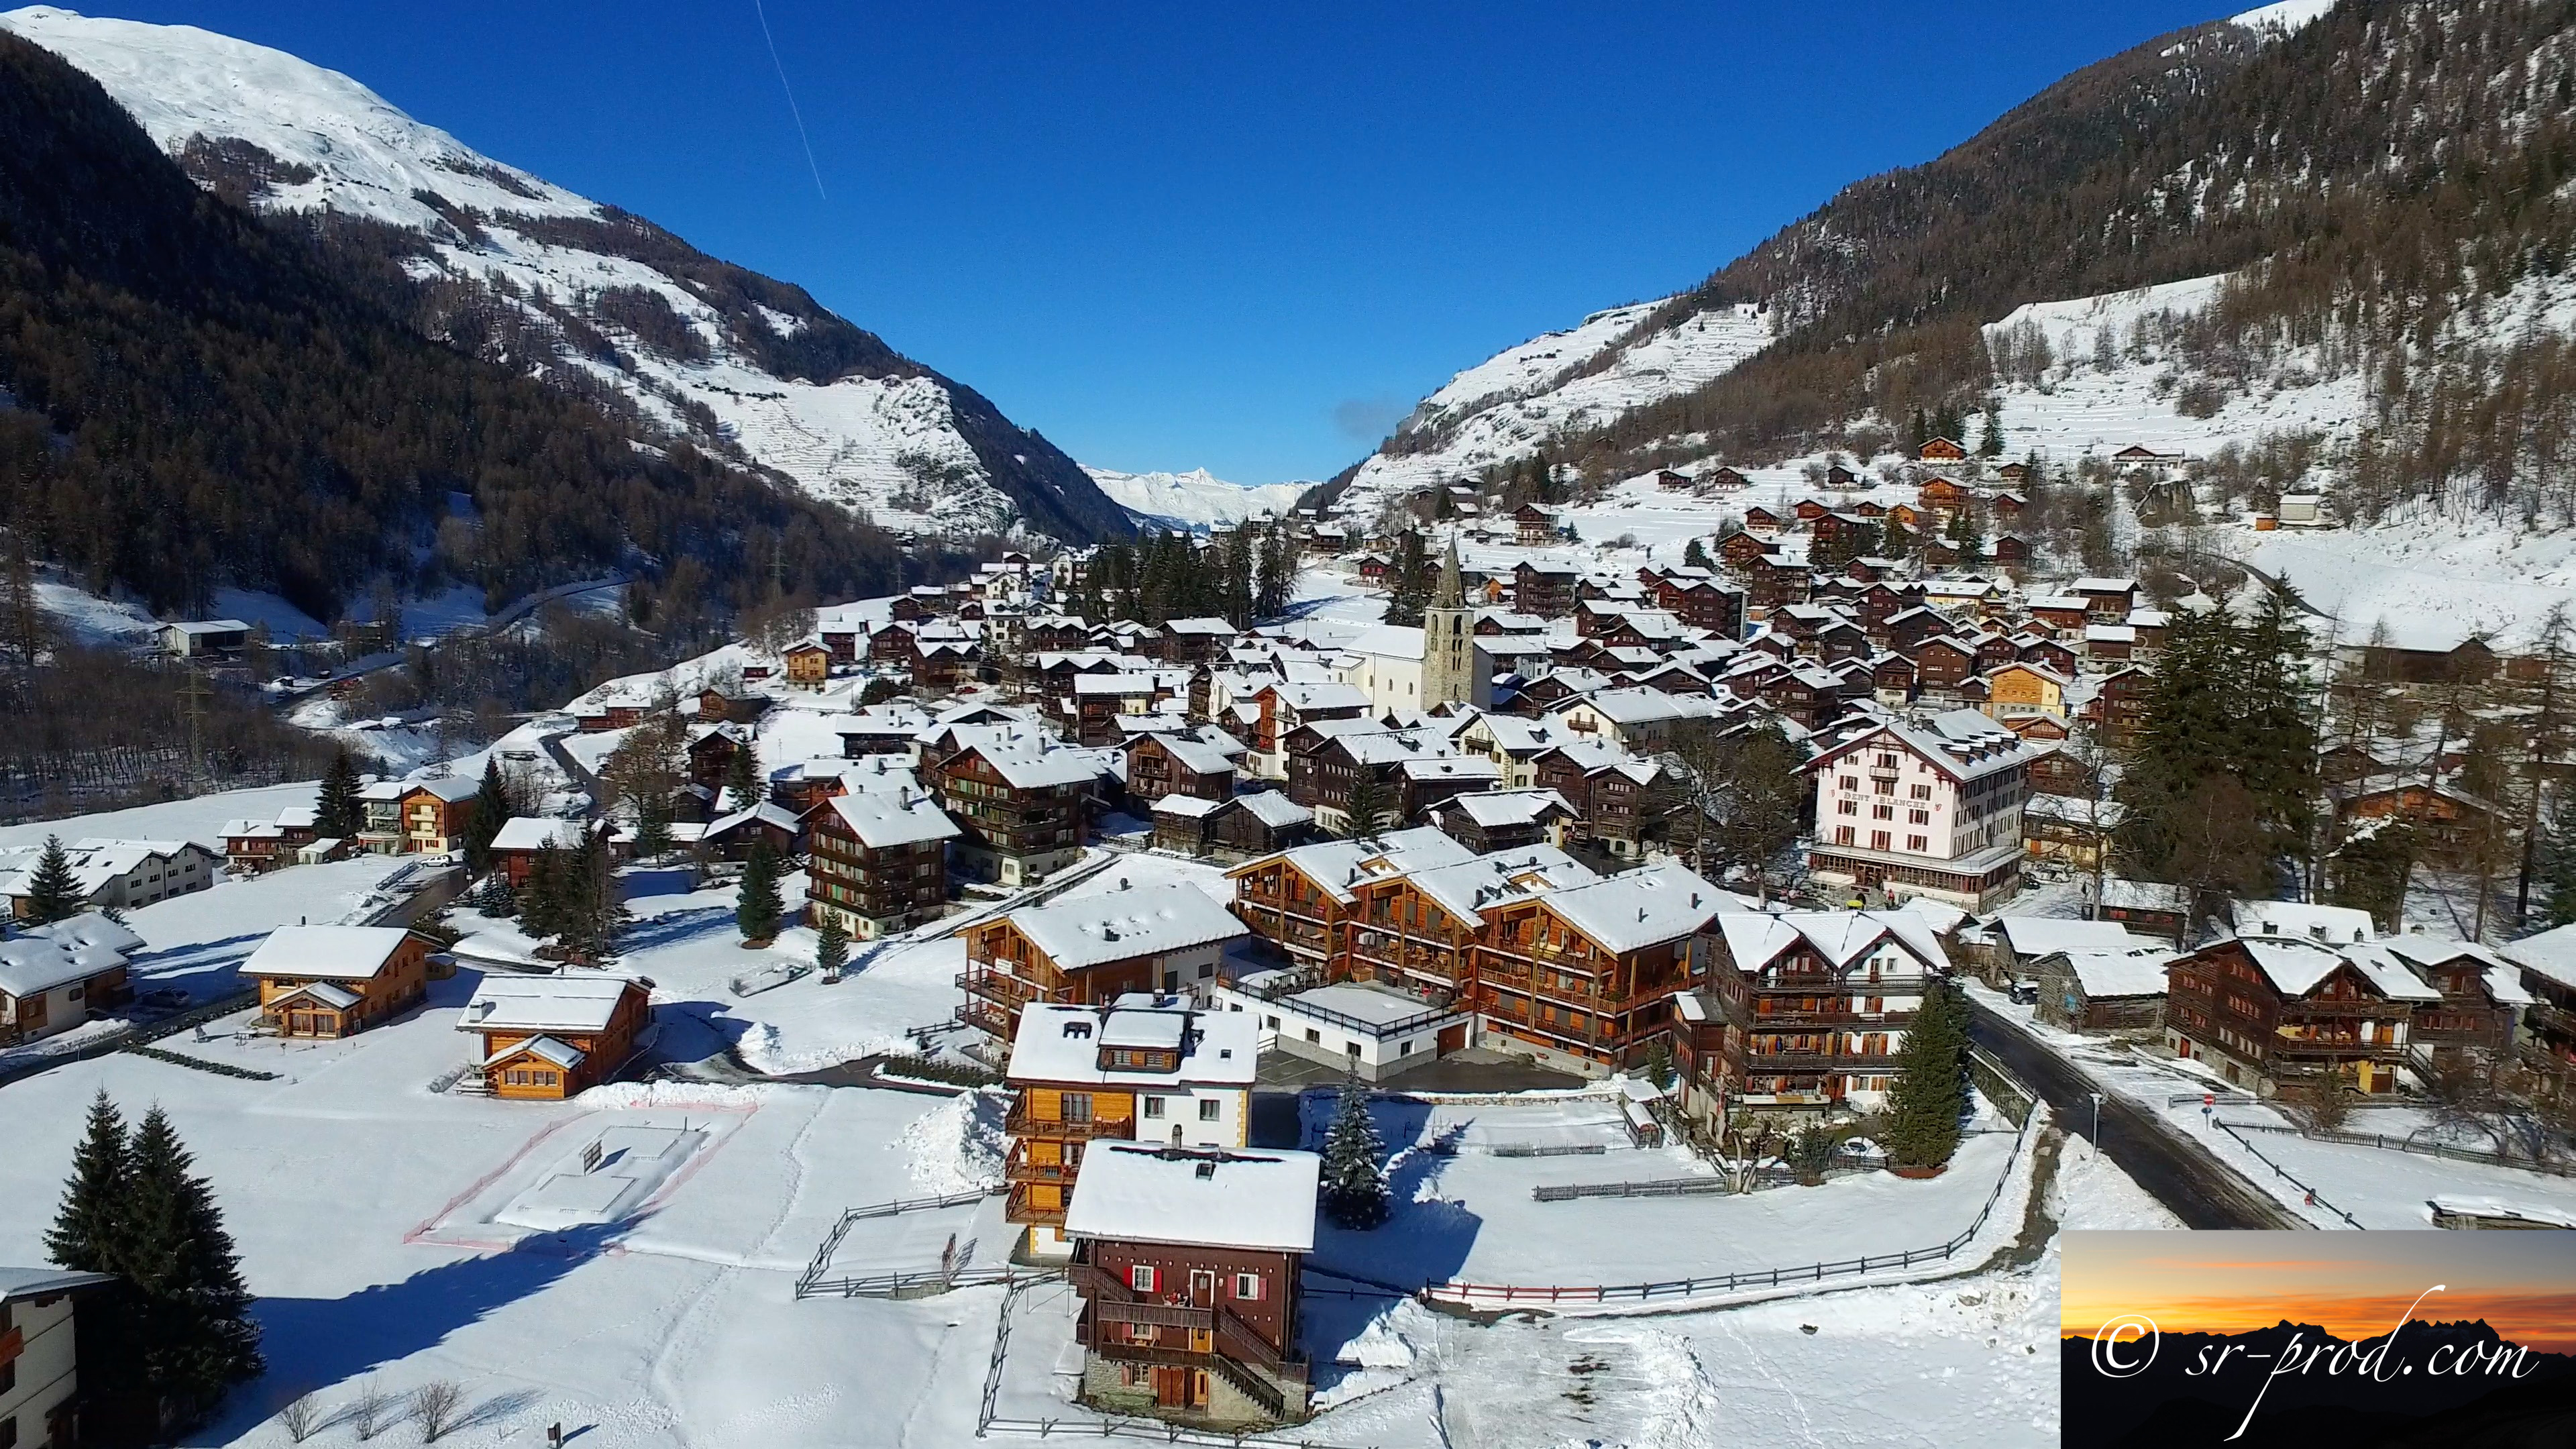 Stunning 4k drone views of the Val d'Hérens valley in winter